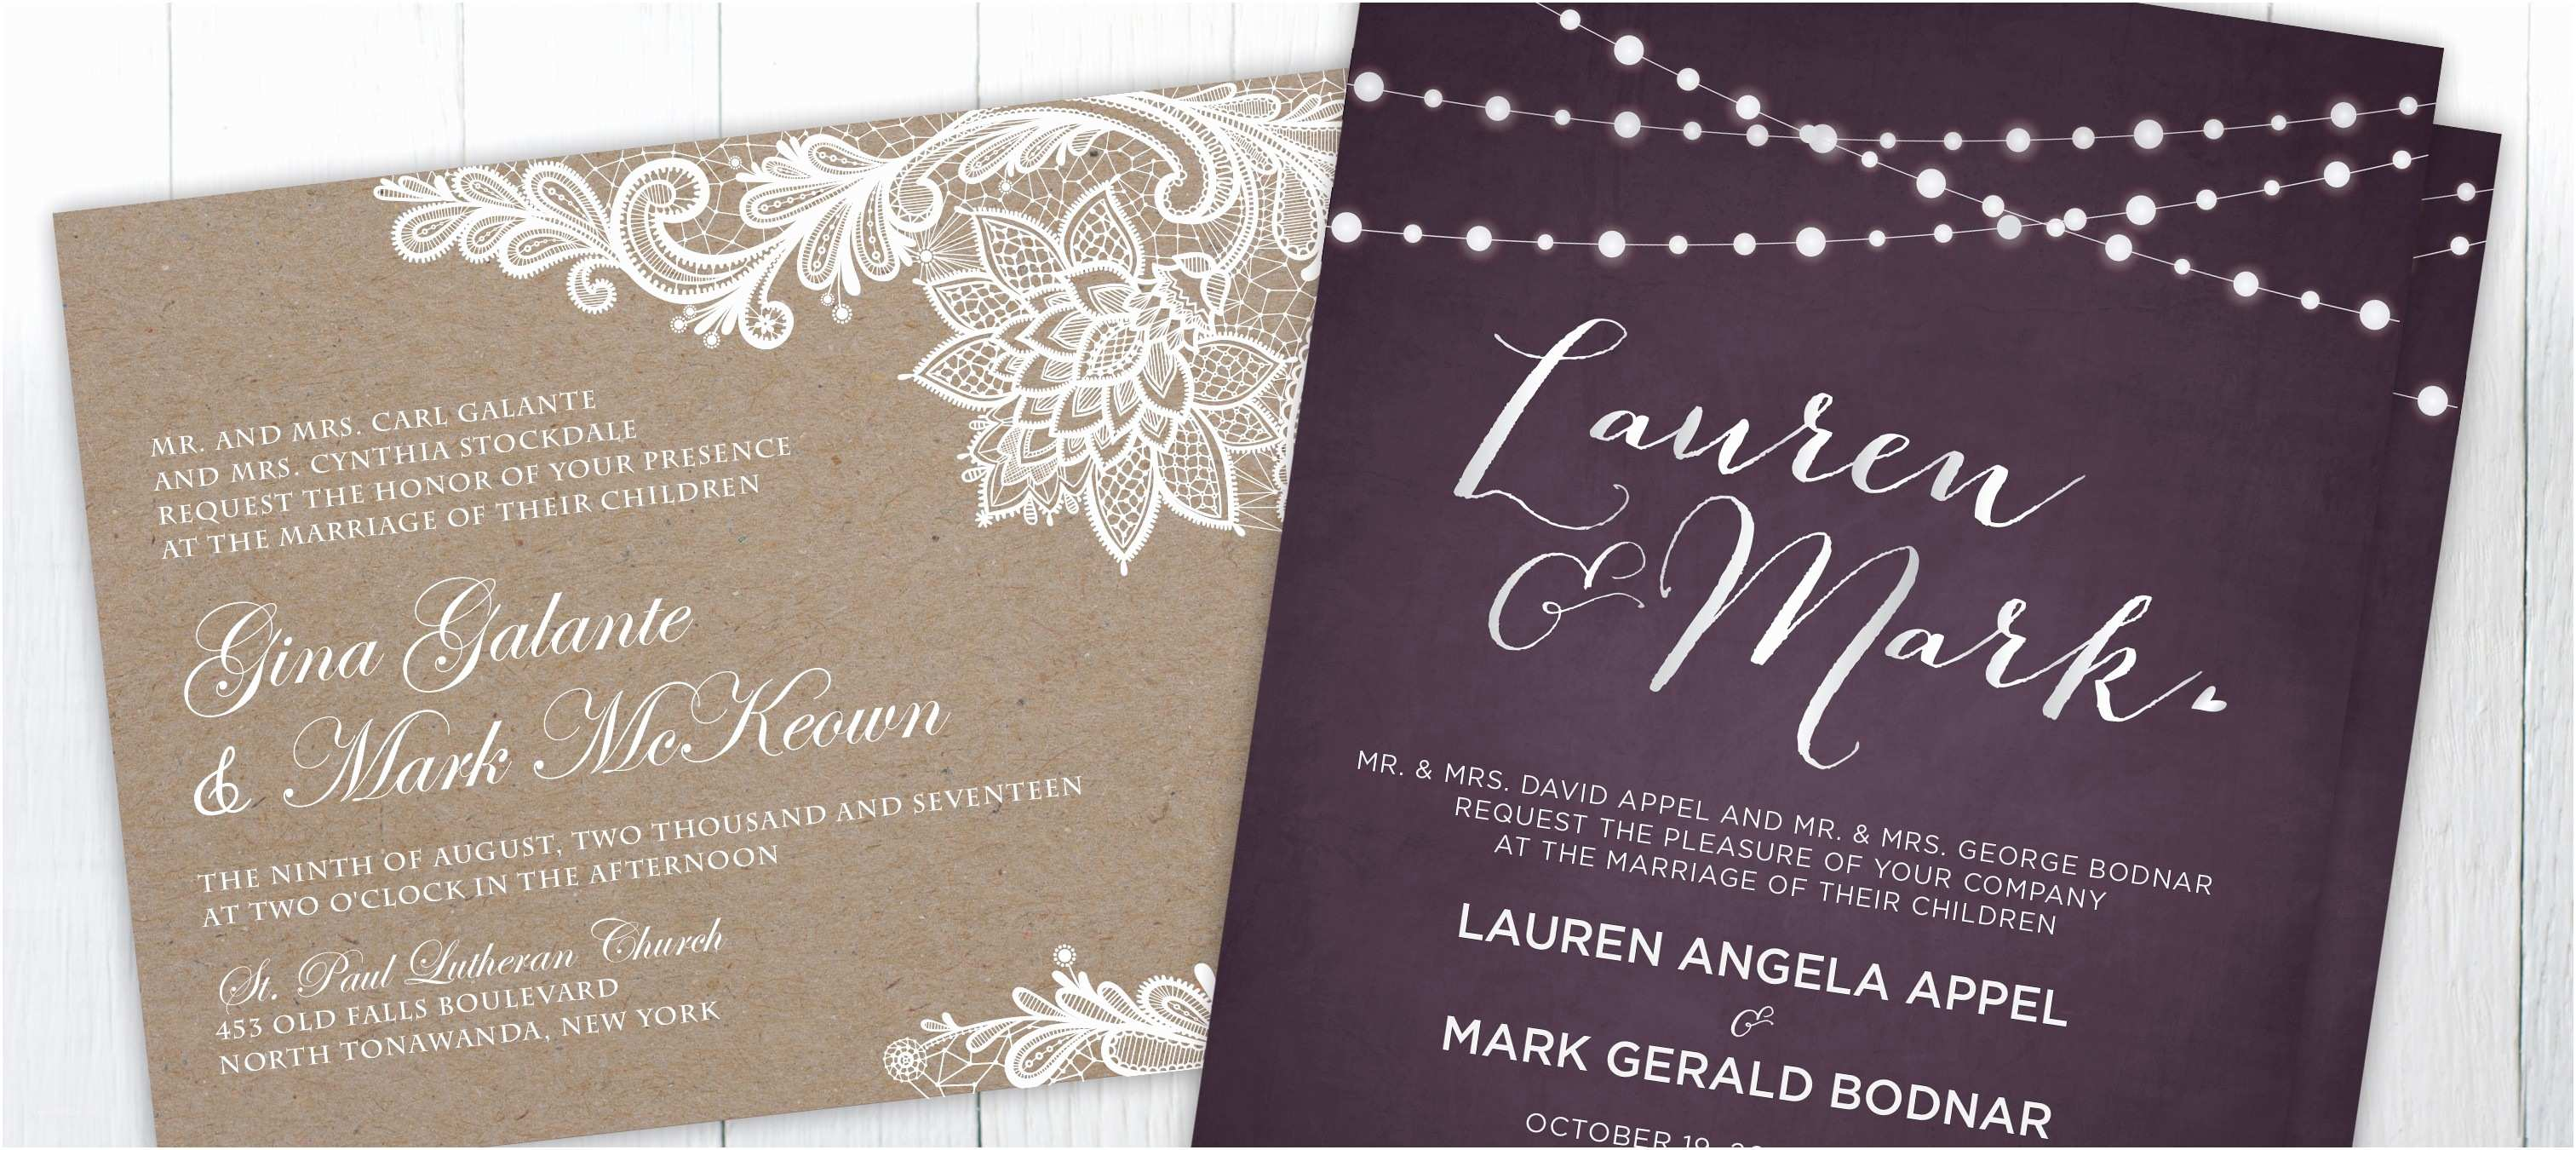 Together with their Parents Wedding Invitation Beautiful Wedding Invite Wording to Her with their